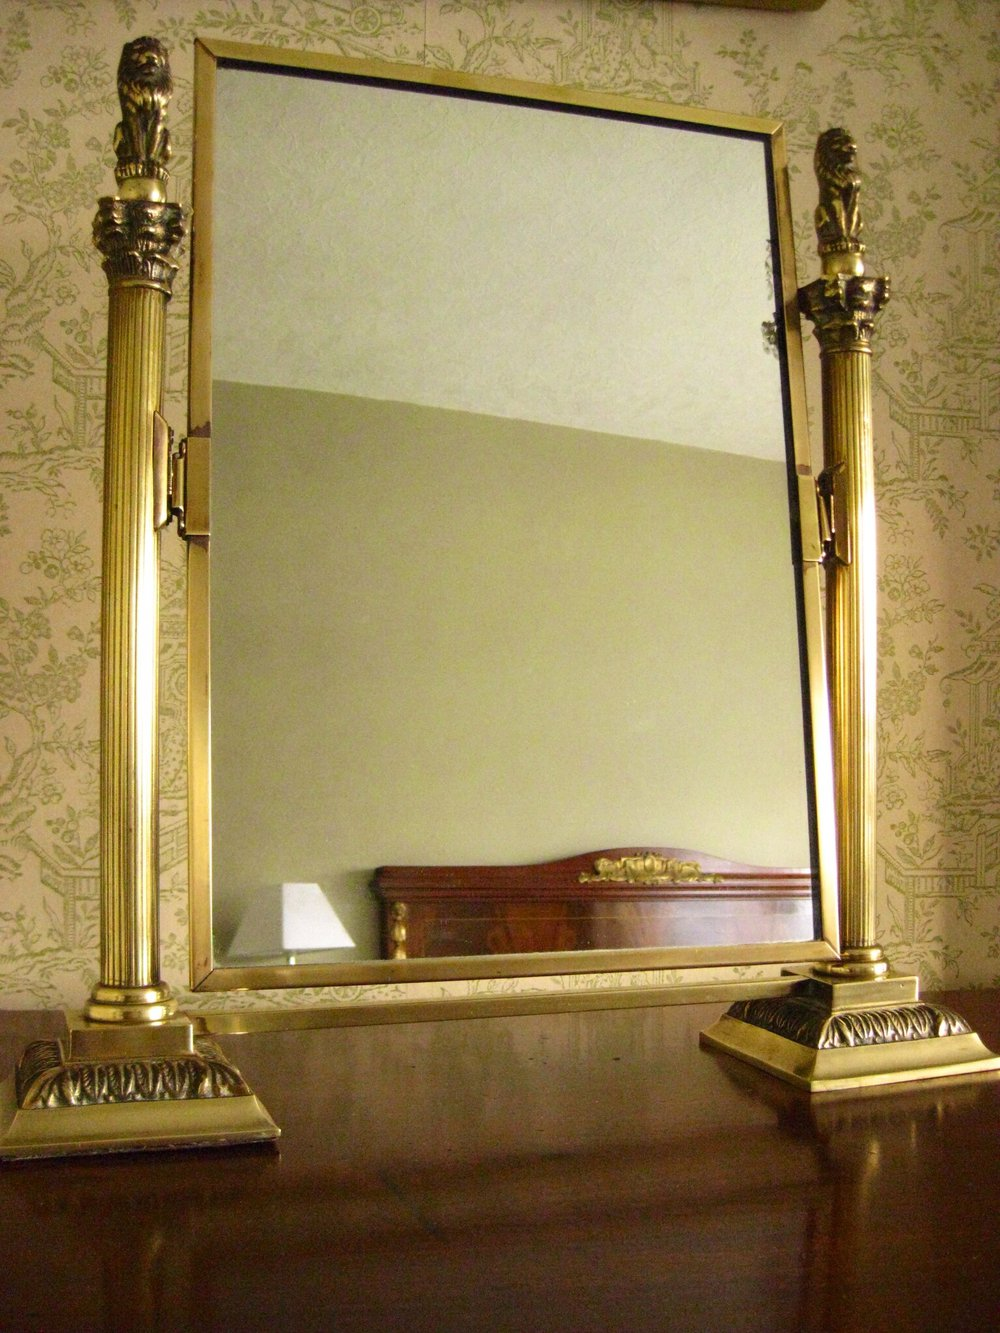 Antiques atlas brass framed toilet dressing table mirror for Vanity dressing table with mirror